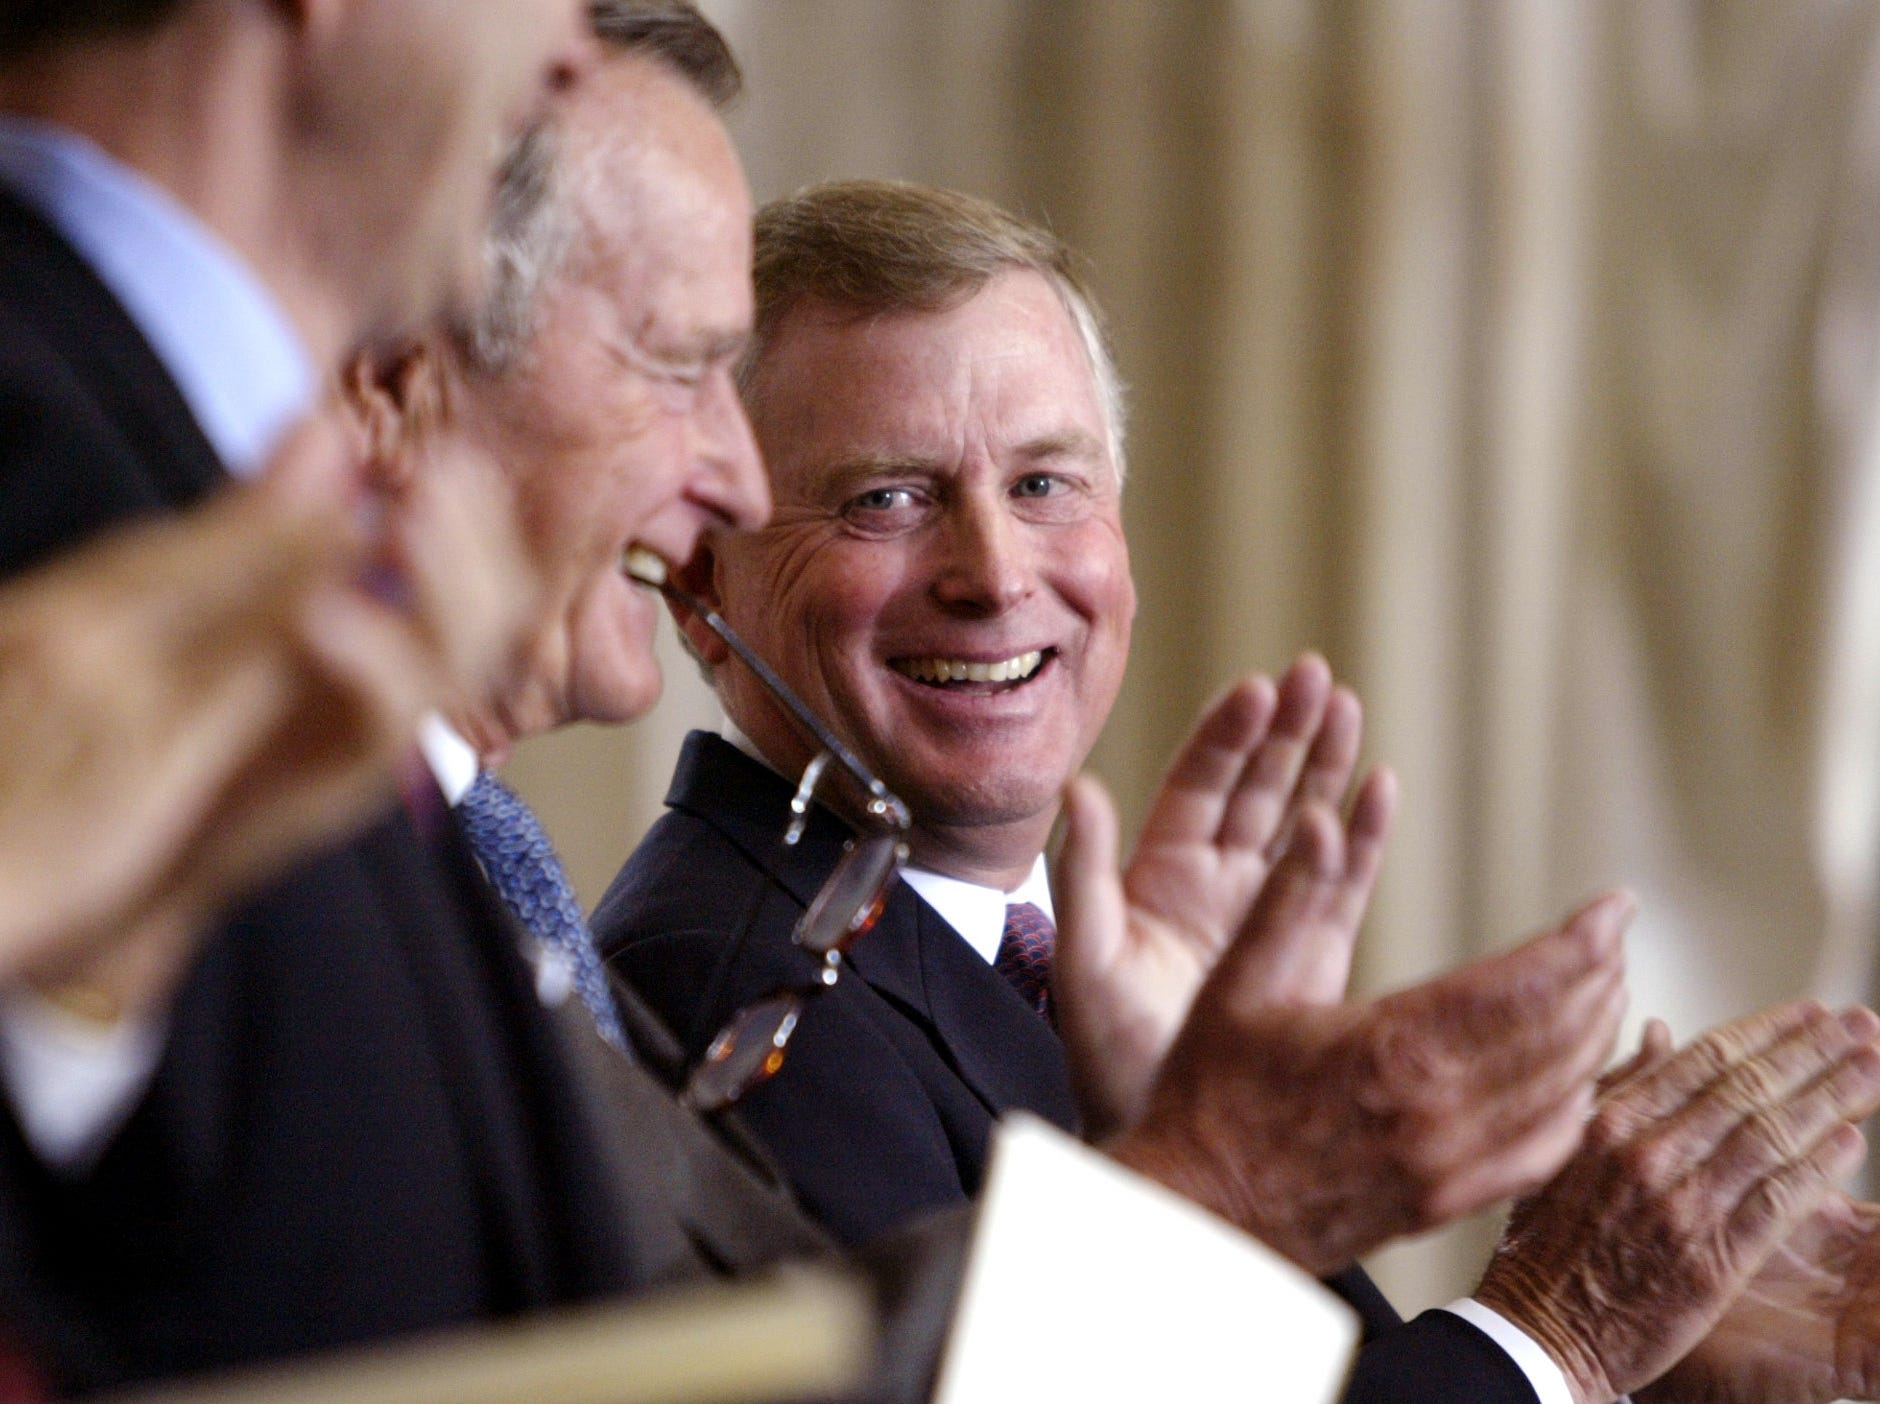 President George H. W. Bush and Vice President Dan Quayle attend a ceremony at the U.S. Capitol on Sept. 10, 2003, for the unveiling of a bust of the former vice president.